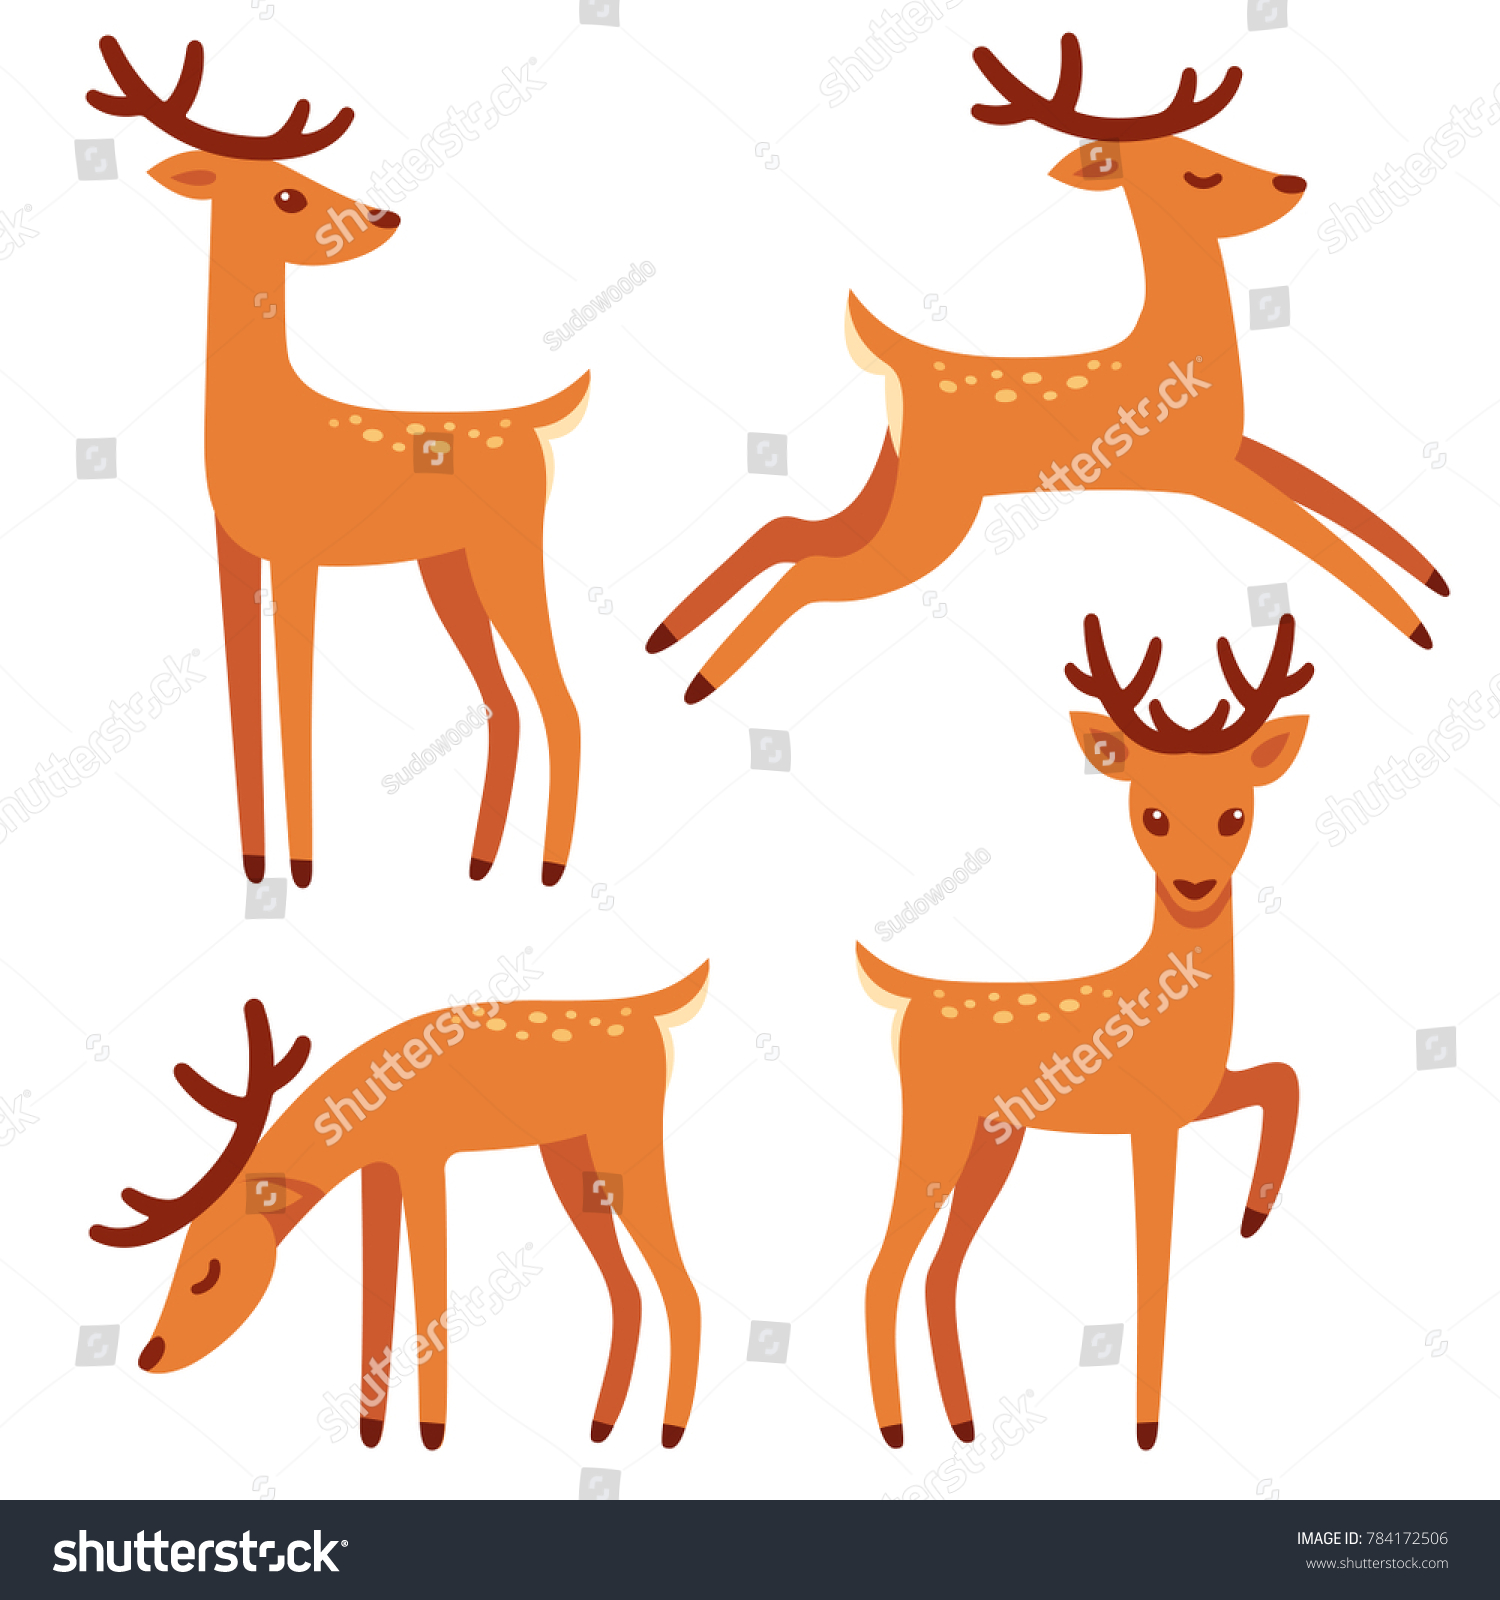 Cute Deer With Antlers Vector Illustration Set Standing Jumping